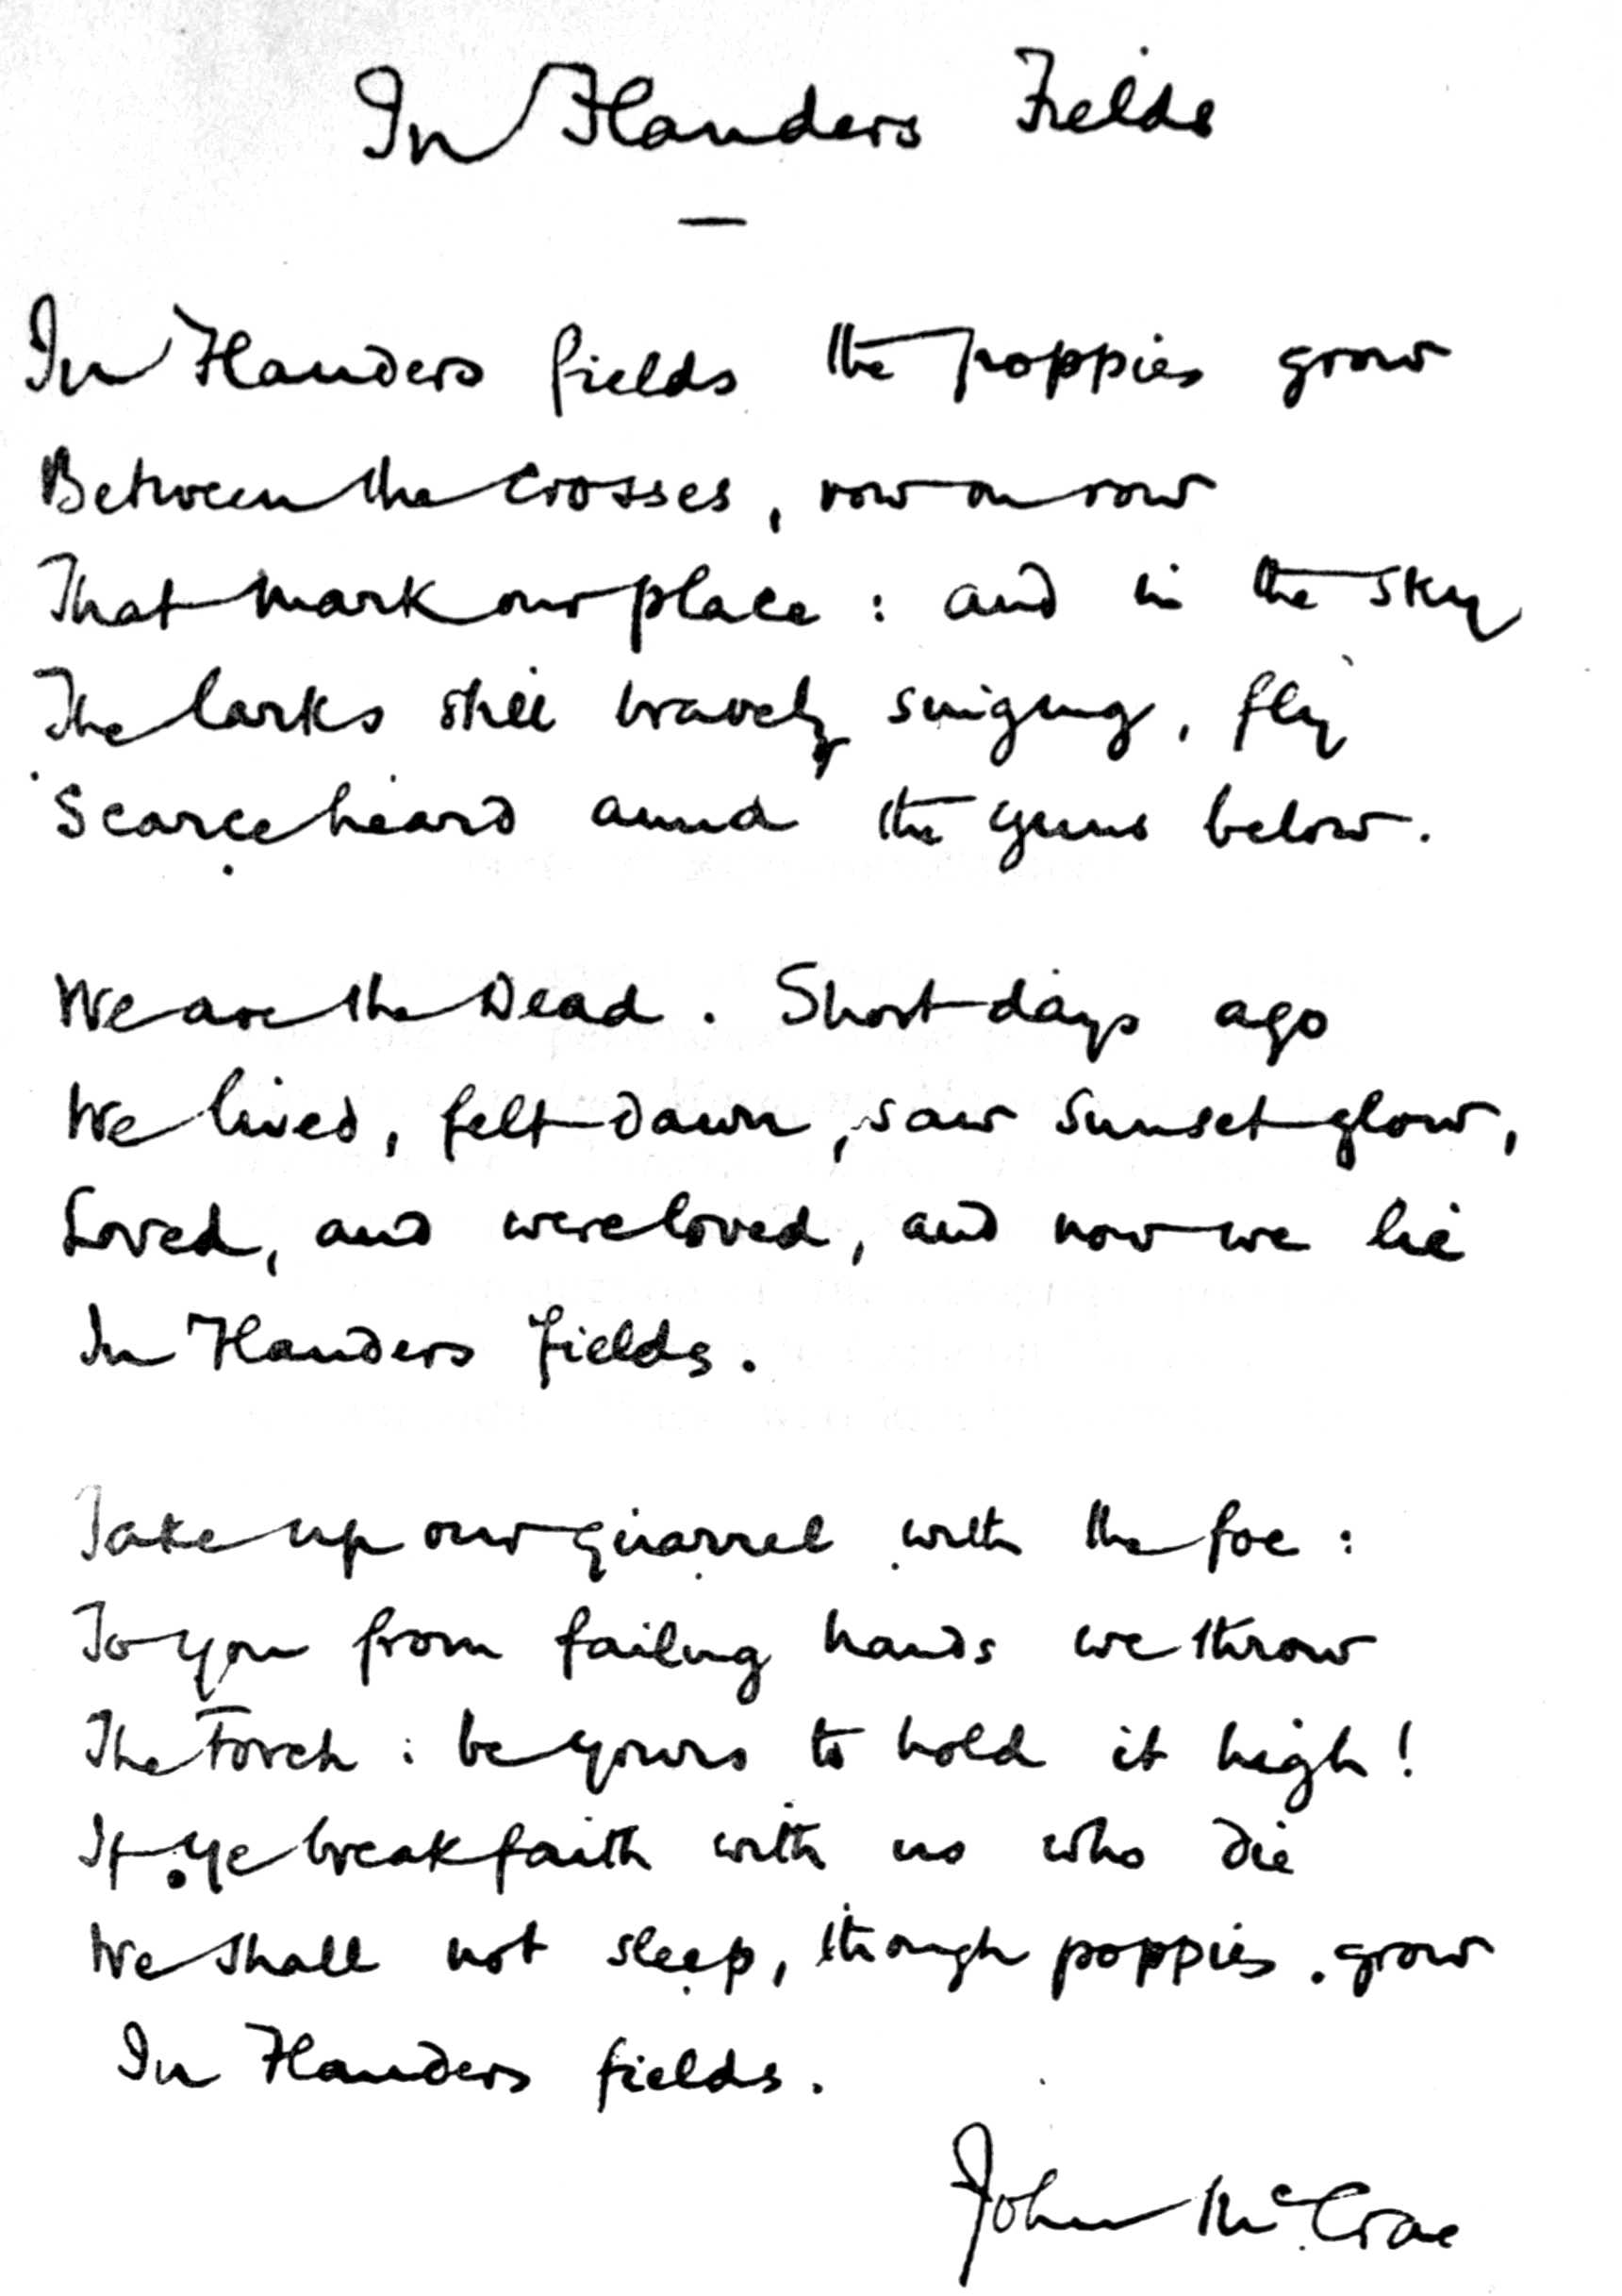 Rotations Practice Worksheet together with File In Flanders Fields and Other Poems Handwritten